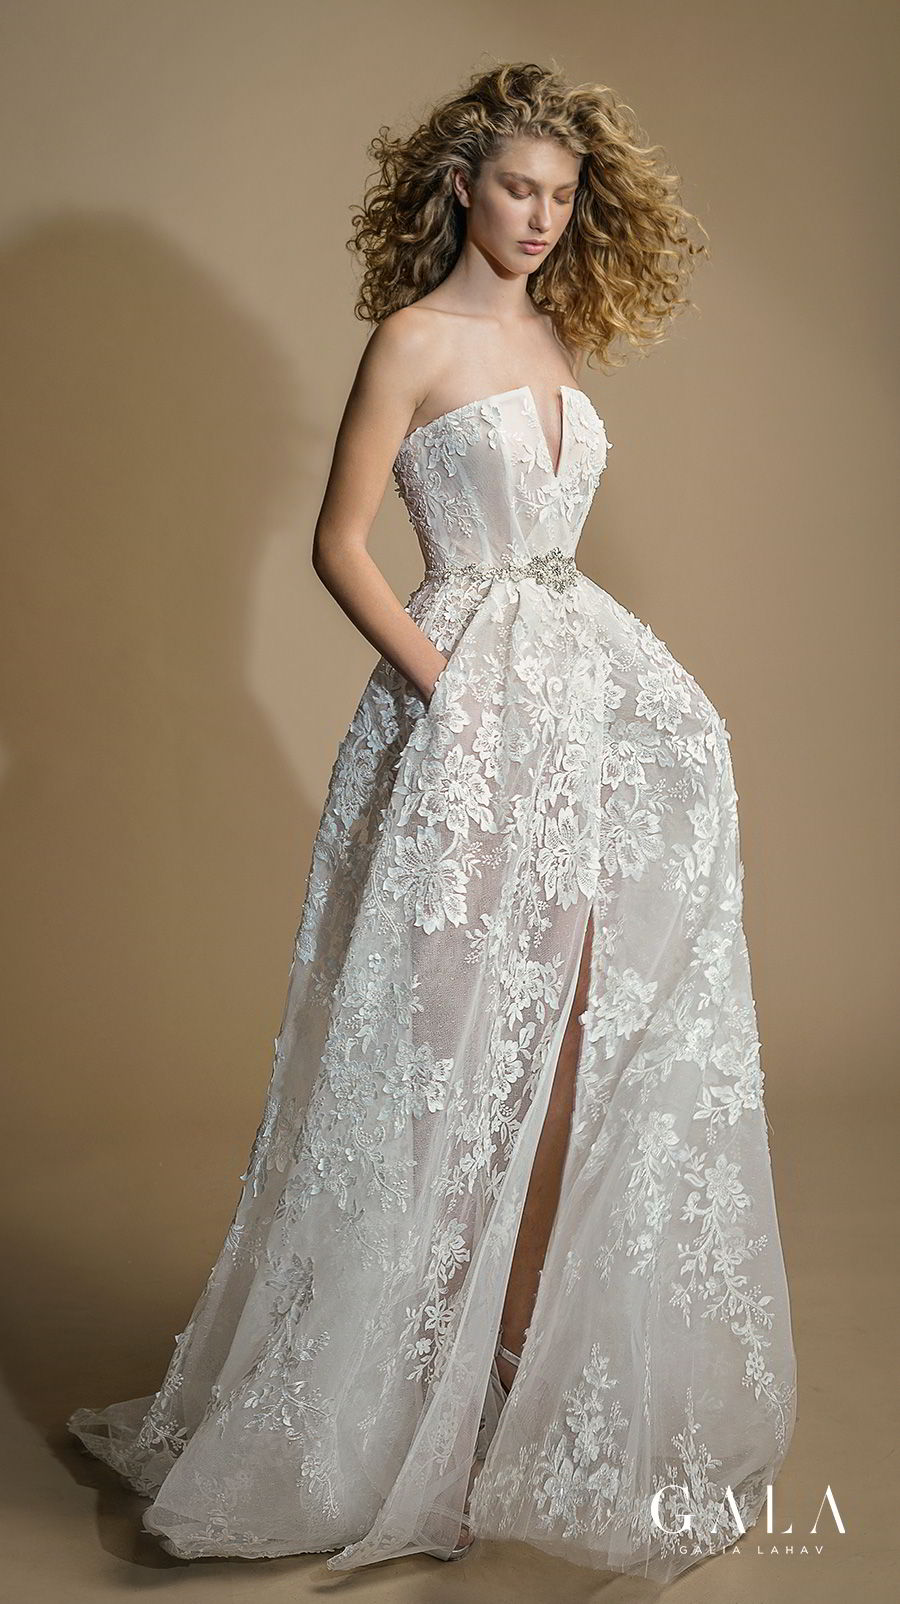 galia lahav gala 2019 bridal strapless straight across neckline full embellishment slit skirt romantic a  line wedding dress with pockets chapel train (107) mv